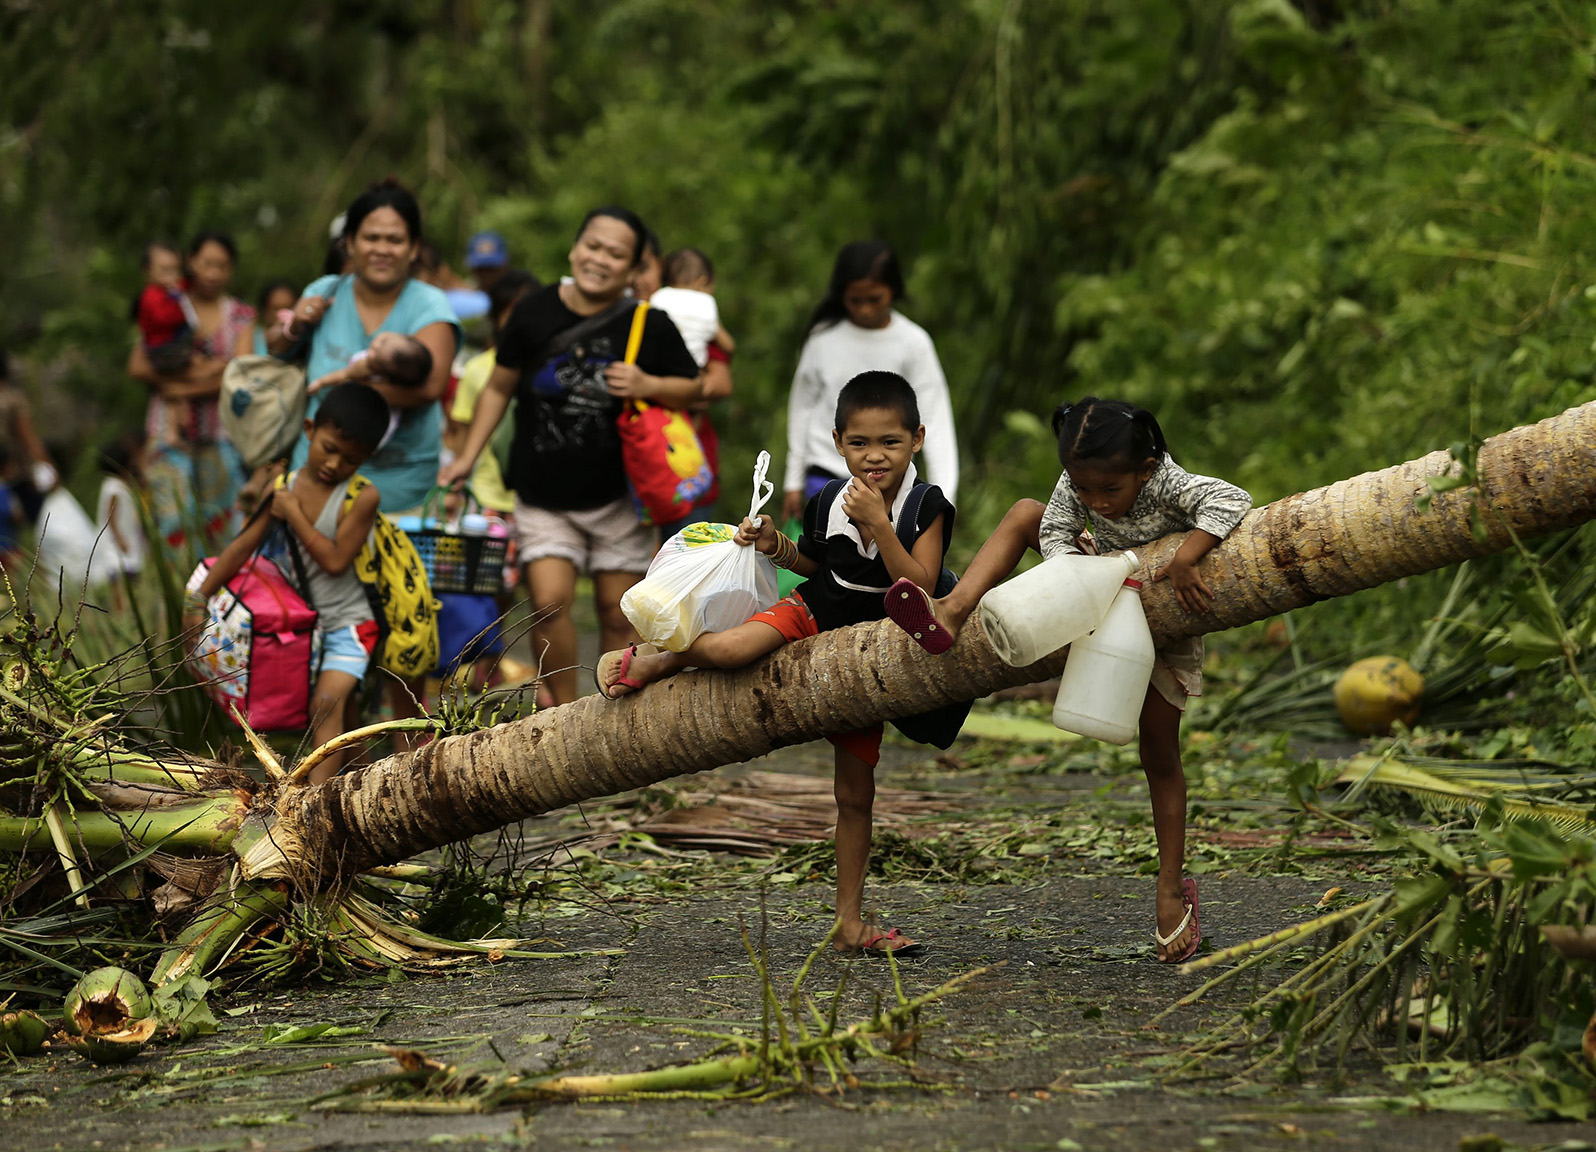 Filipino evacuees walk on a path with debris in the typhoon-hit town of Juban, Sorsogon province, southern Philippines, 15 December 2015. Typhoon Melor weakened slightly as it barreled through the Philippine islands. causing power outages in towns and cities along its path and forcing thousands to flee their homes, officials said. It said 733,150 people had fled their homes amid threats of sea surges, flash floods and landslides.  EPA/FRANCIS R. MALASIG